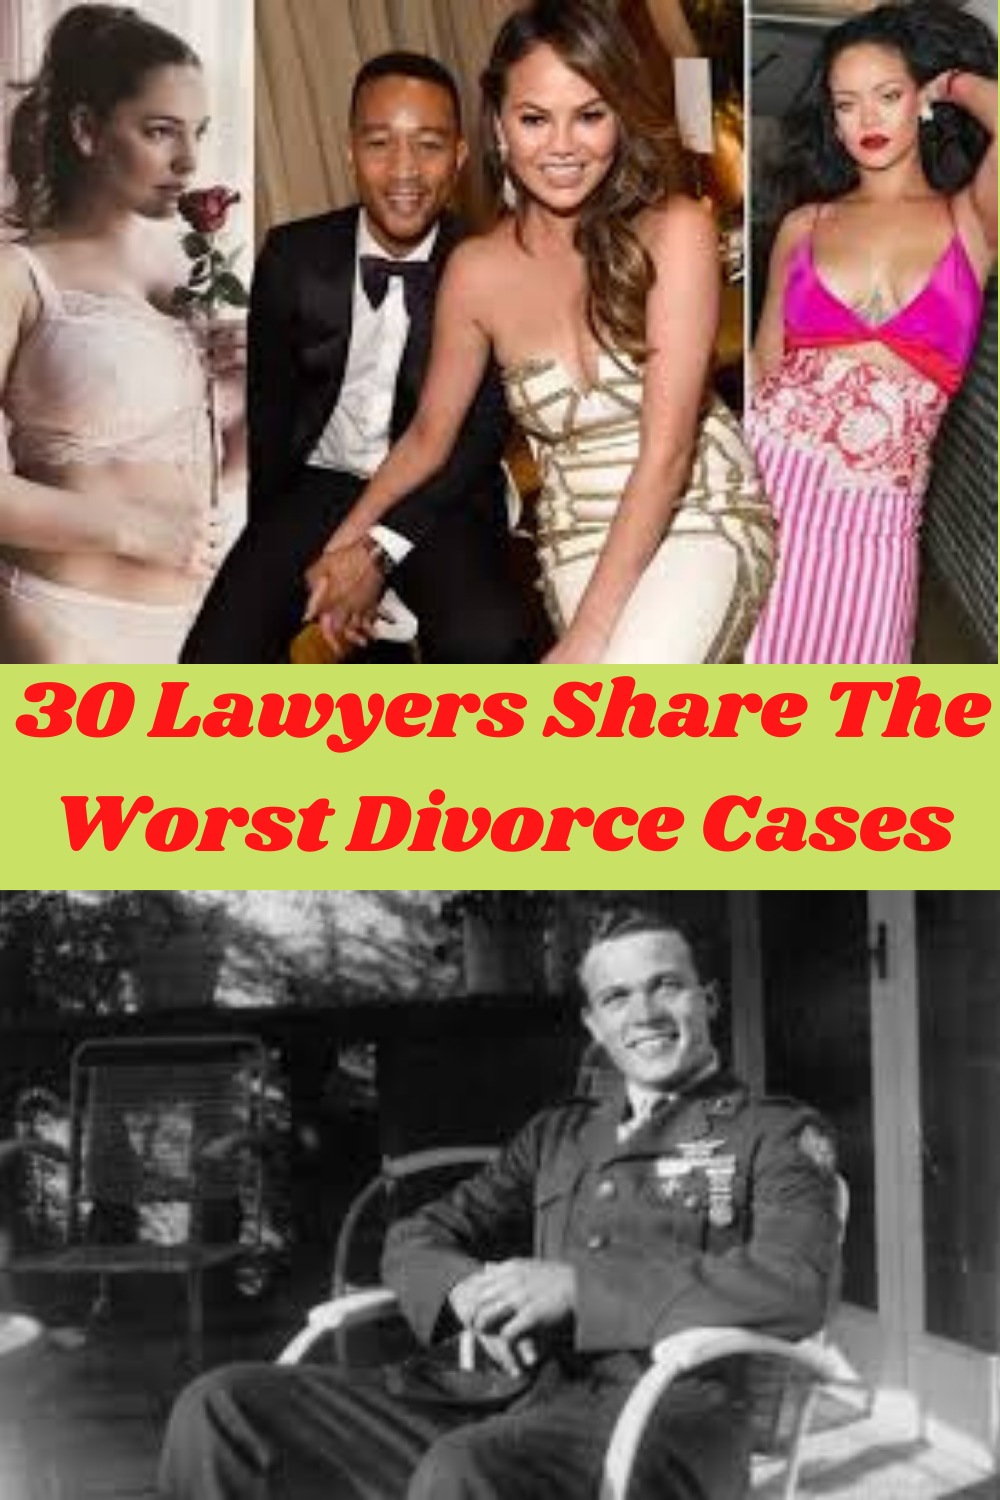 30 LAWYERS SHARE THE WORST DIVORCE CASES in 2020 Divorce